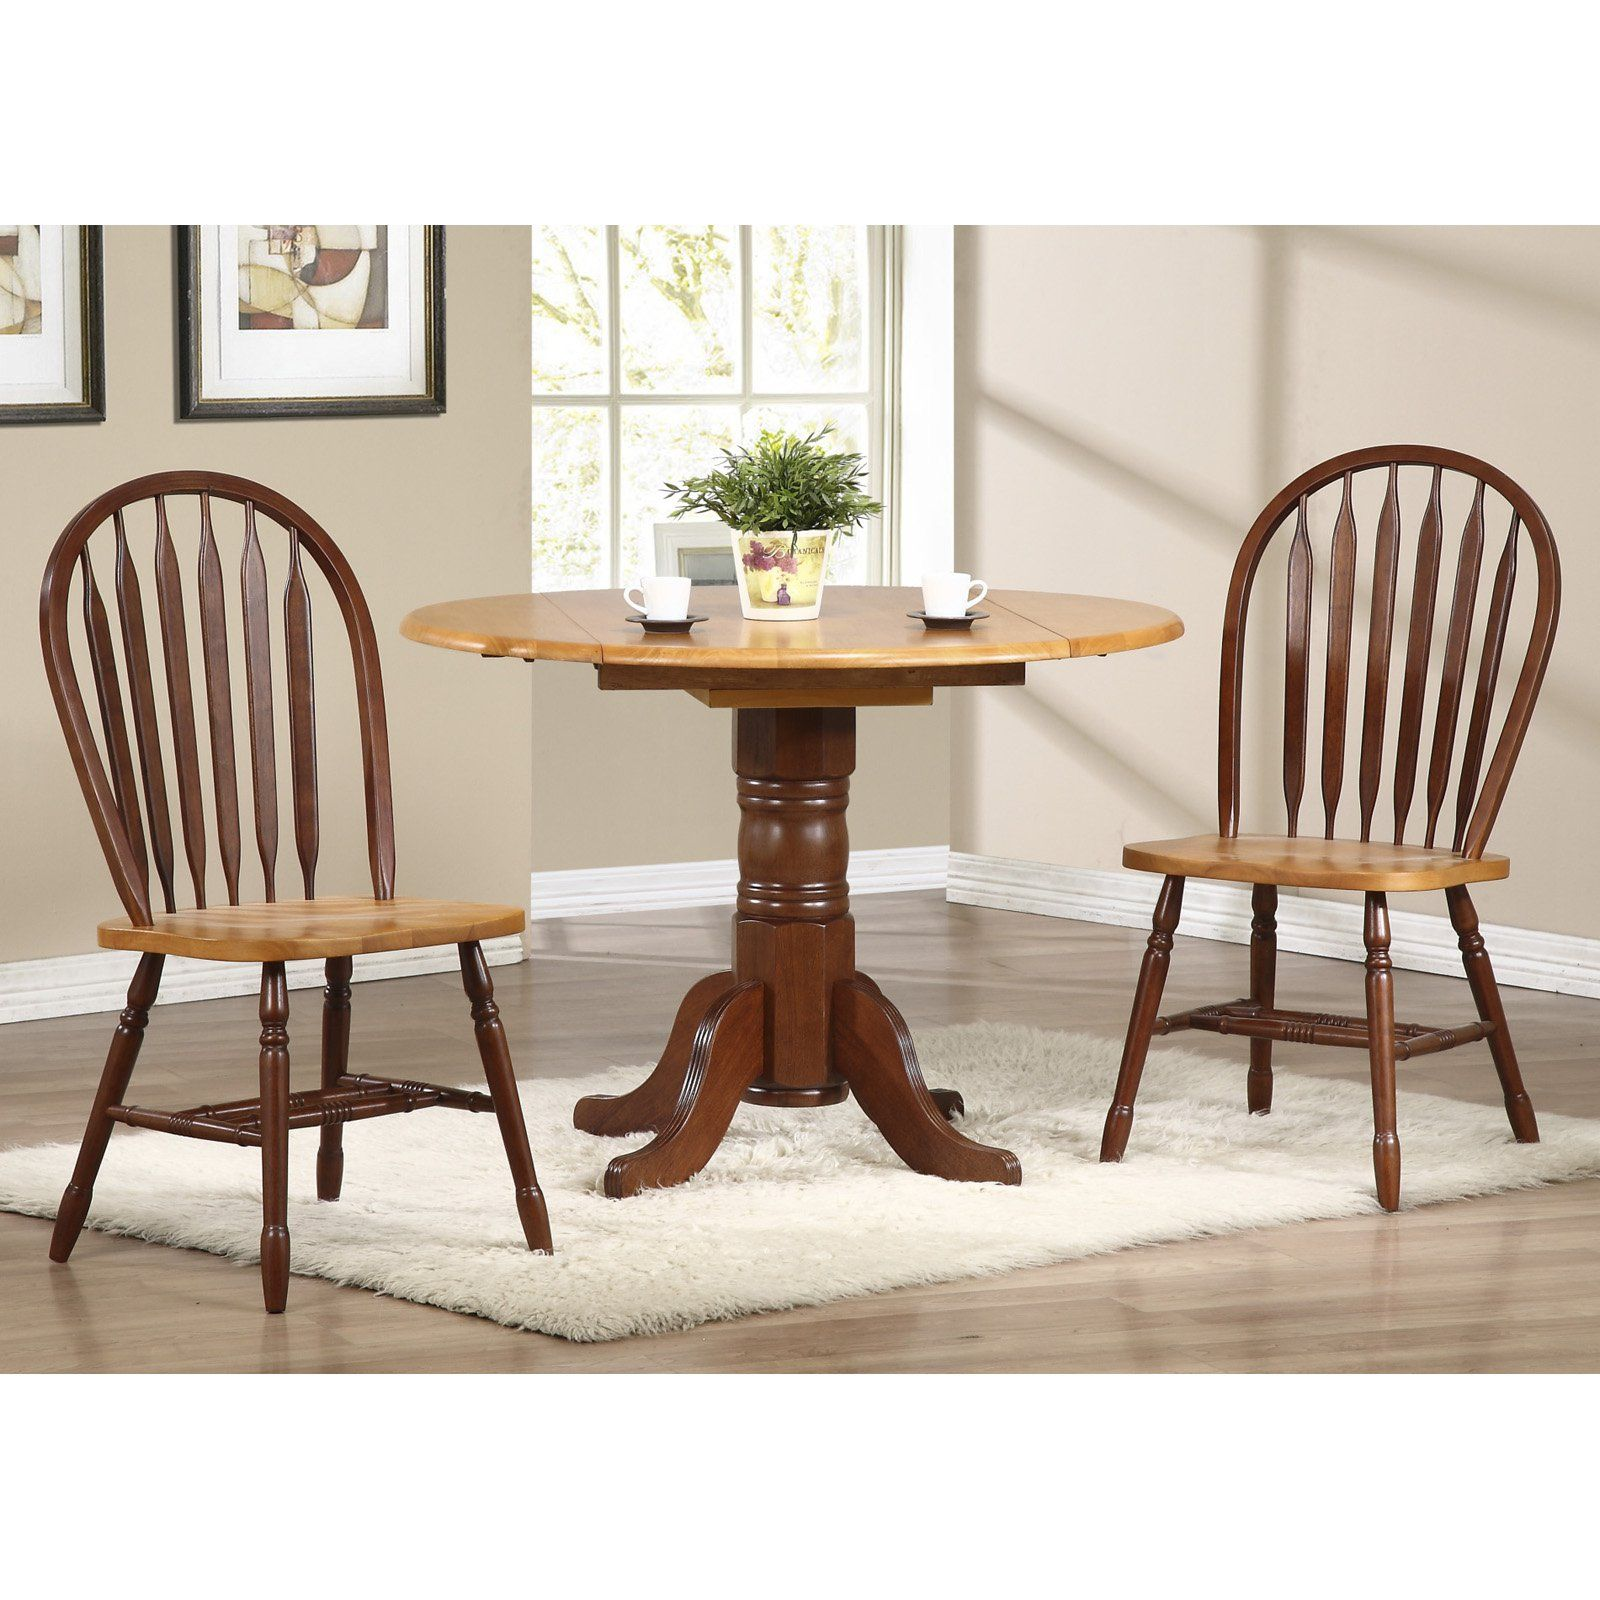 Sunset Trading 3 Piece 42 In Round Drop Leaf Dining Set With